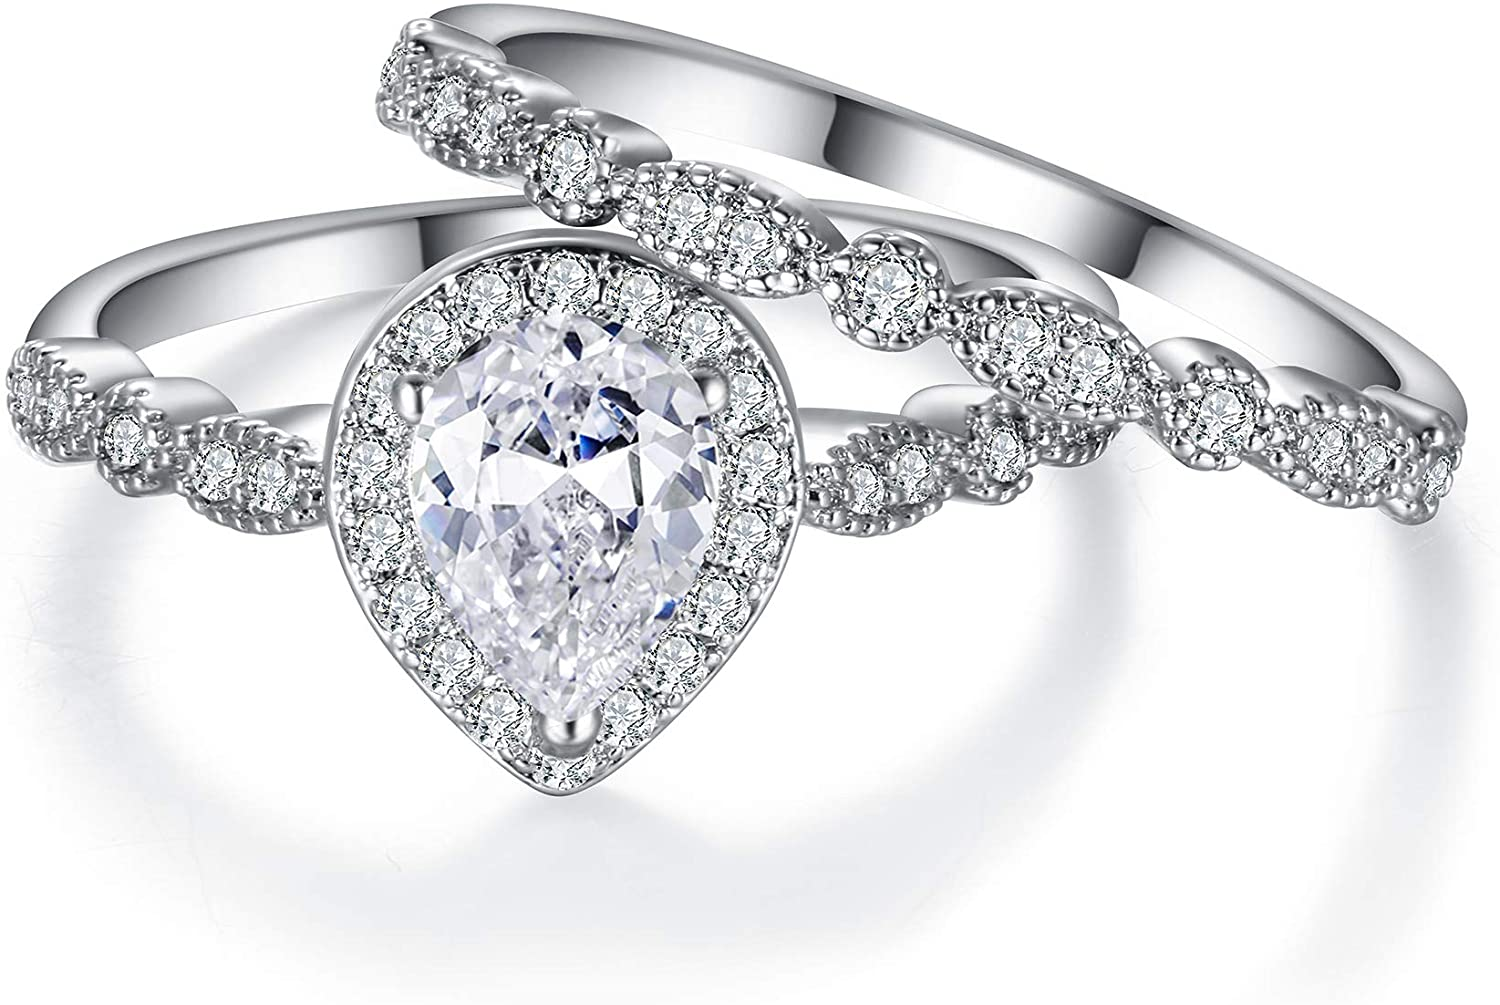 EVER FAITH Full Gorgeous Cubic Zirconia Bridal Prom Engagement Pear Shaped Teardrop Ring Set